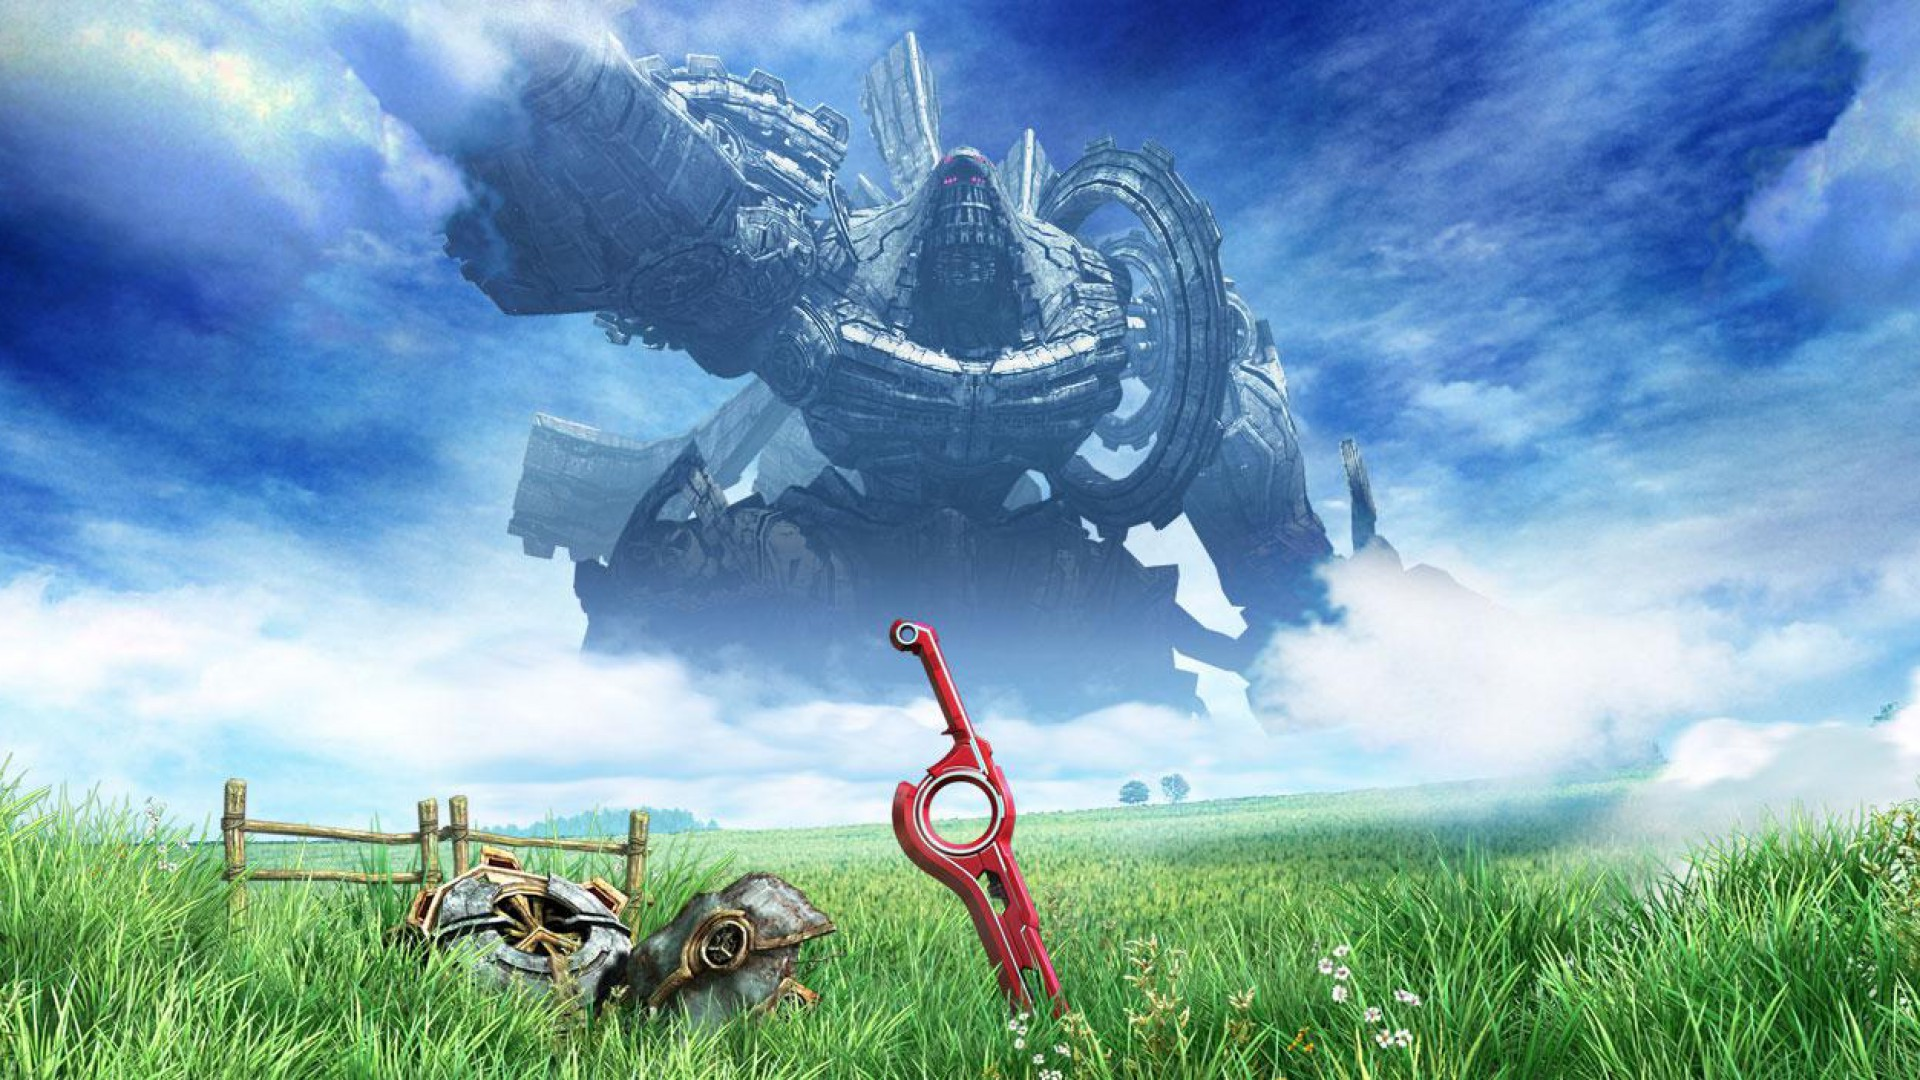 Xenoblade Chronicles wallpaper ·① Download free awesome ...